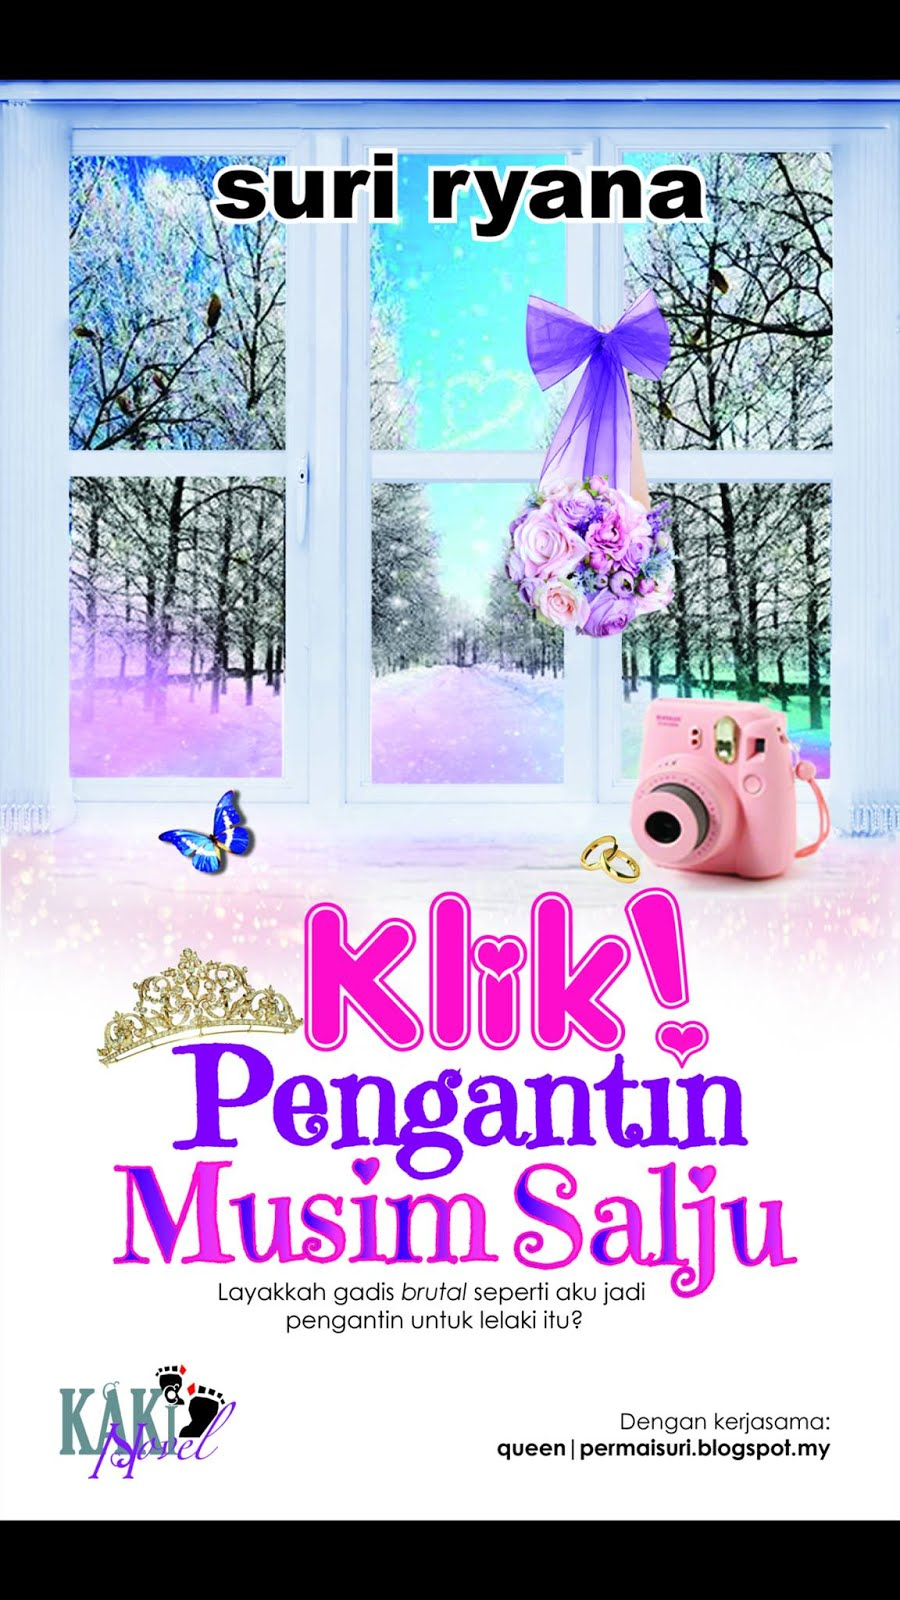 KLIK! PENGANTIN MUSIM SALJU